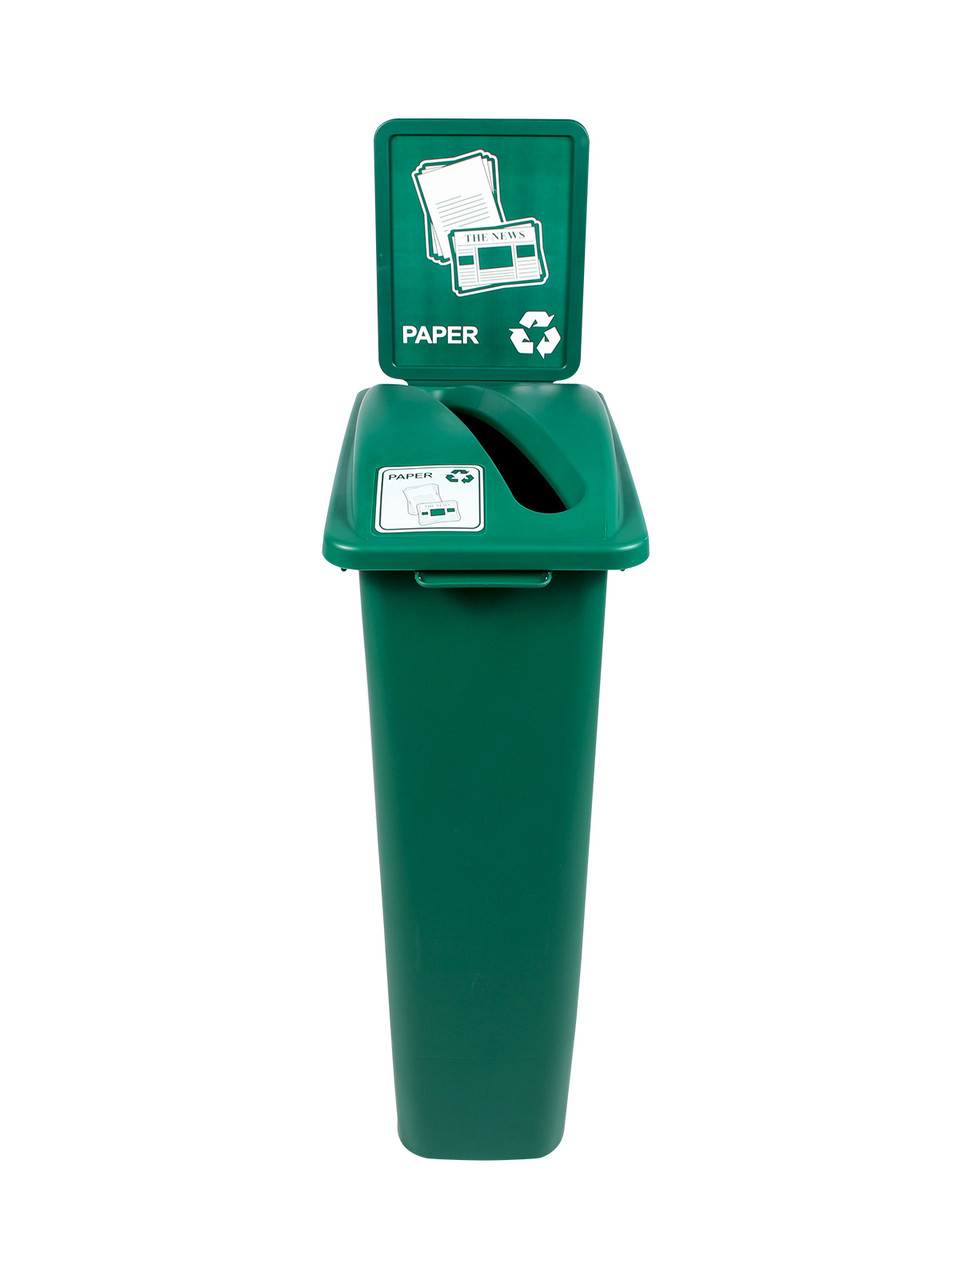 23 Gallon Green Skinny Recycle Bin with Sign (Paper)